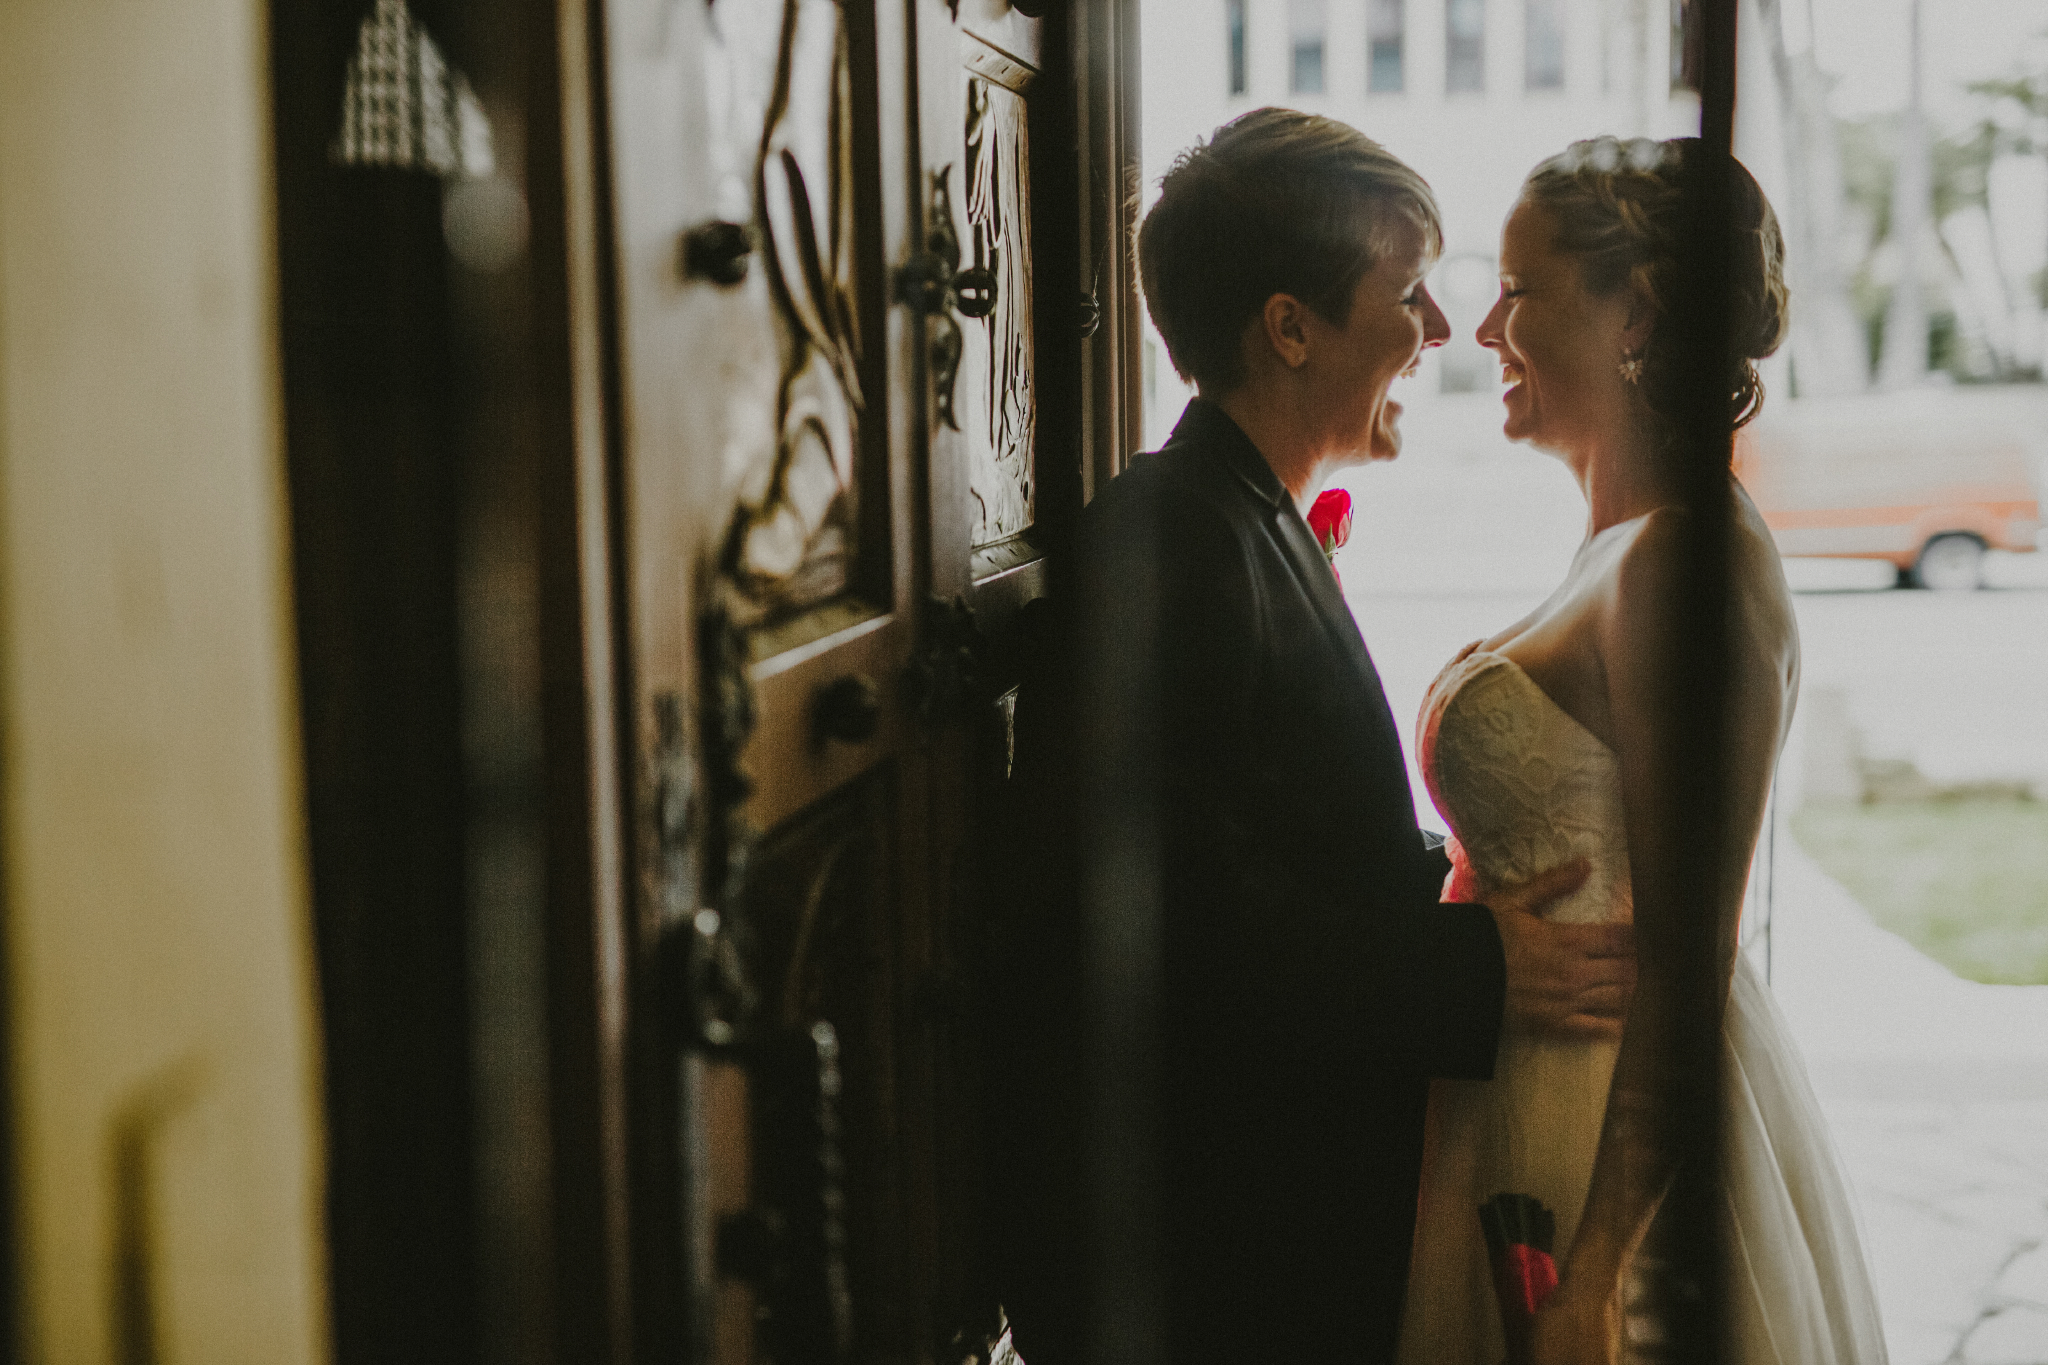 san diego wedding   photographer | 2 women laughing in front of each other in doorway